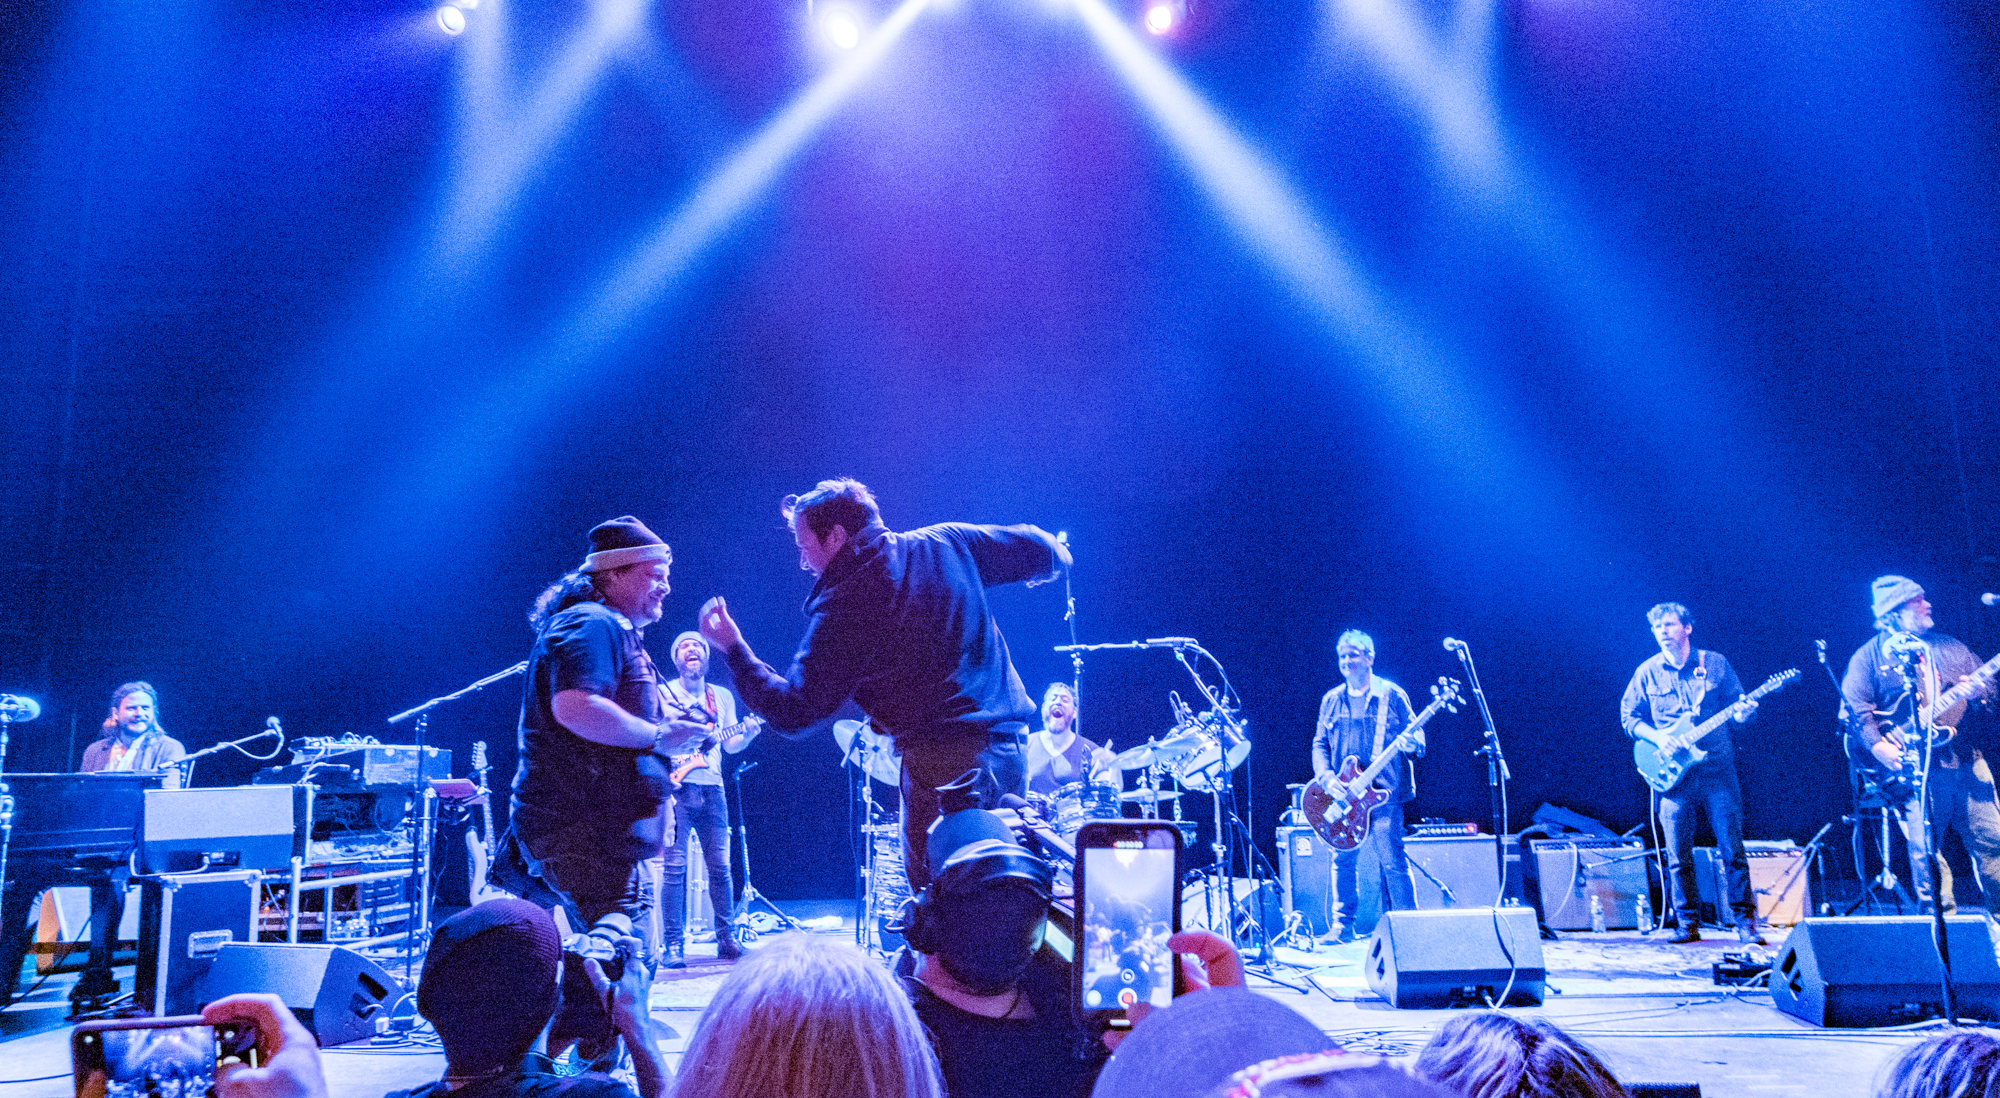 GALLERY: 3 Nights with Joe Russo's Almost Dead at The Capitol Theatre